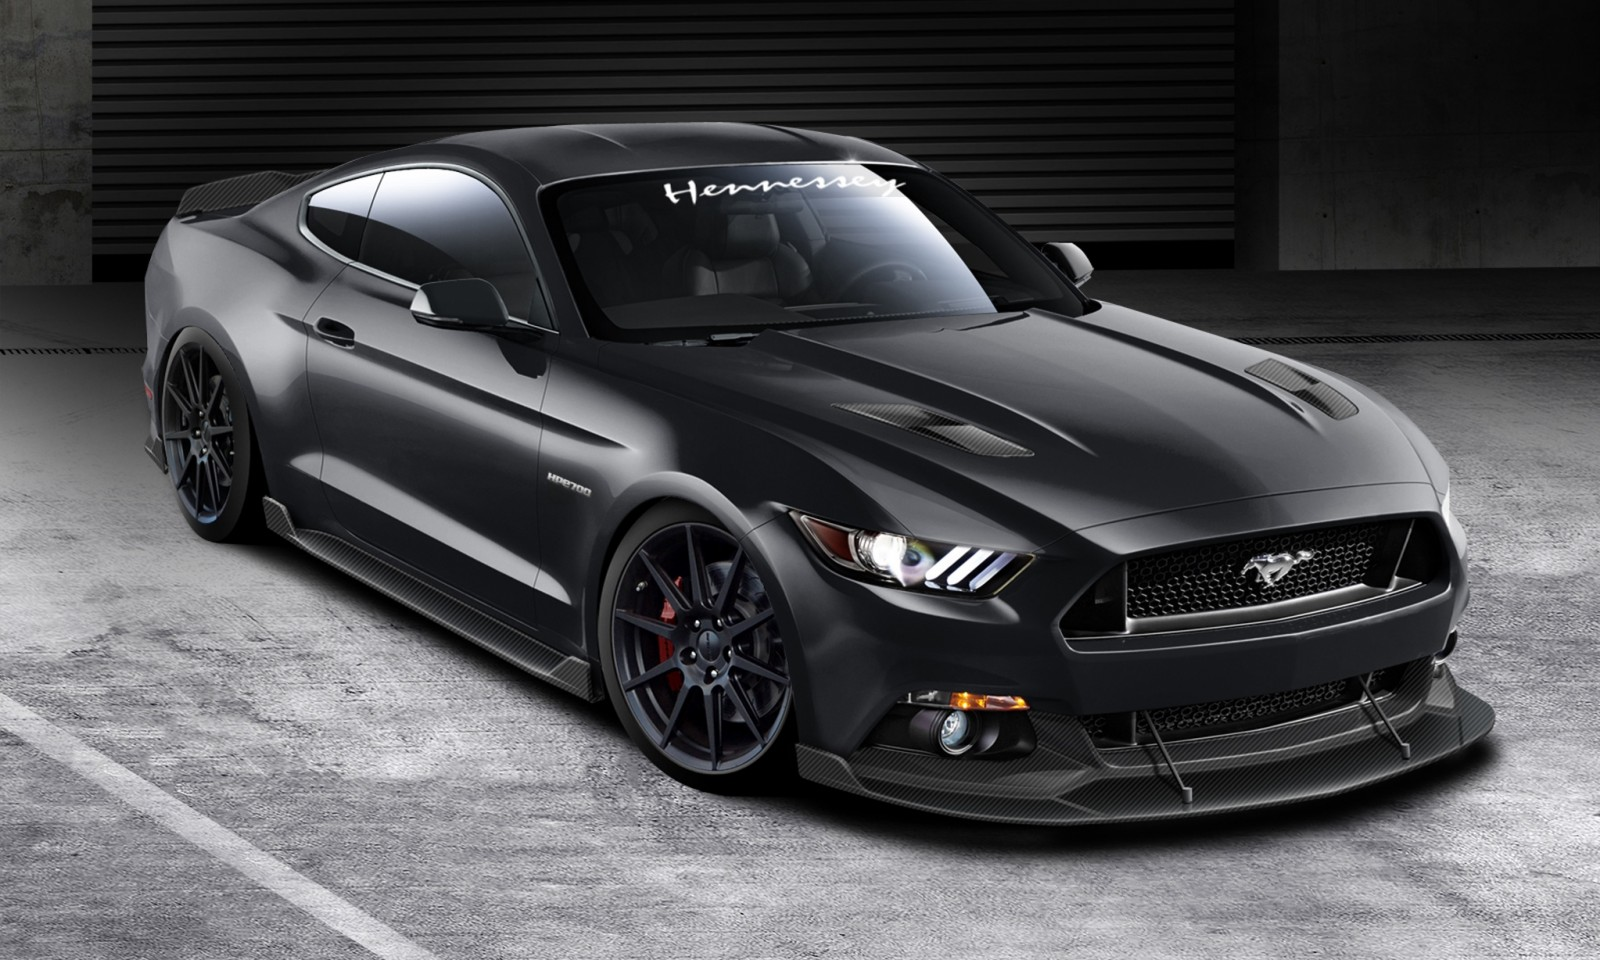 2015 Hennessey HPE700 Mustang 4